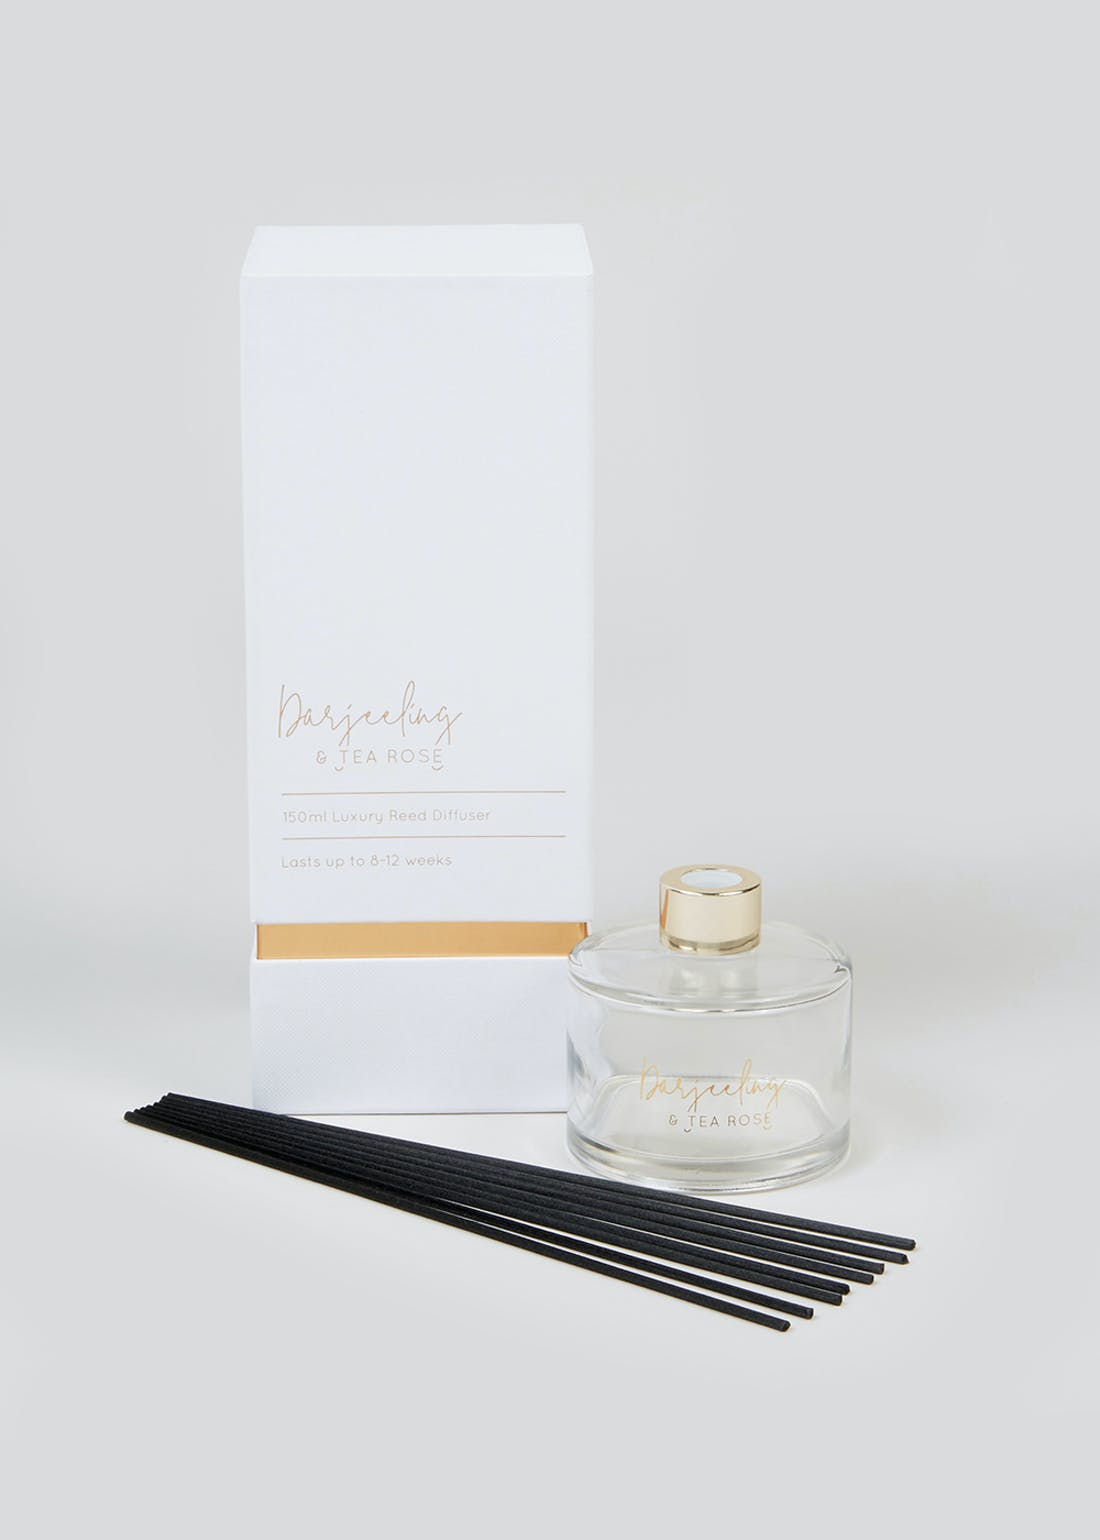 Darjeeling & Tea Rose Luxury Reed Diffuser (150ml)